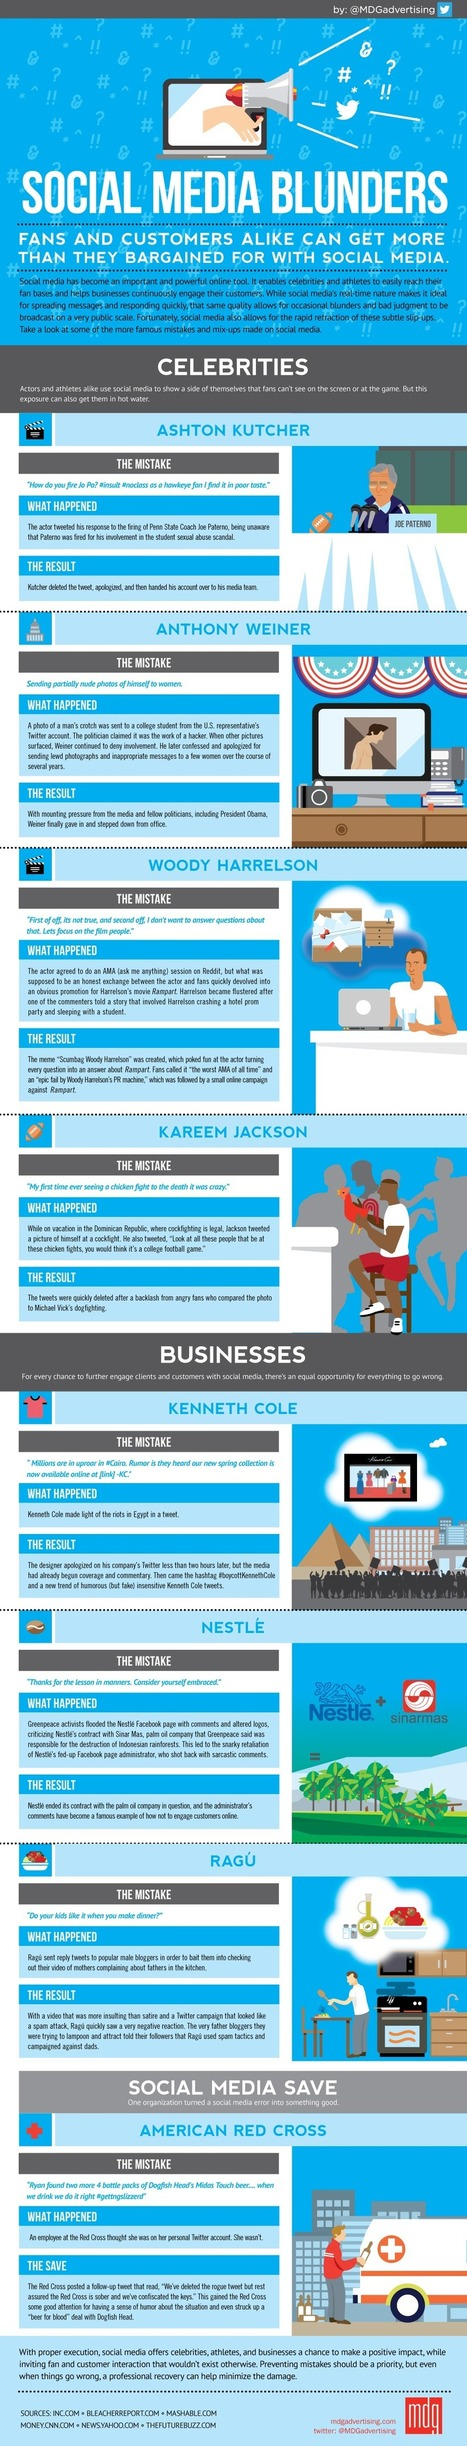 Social Media Blunders from Celebrities and Businesses #infographic /@BerriePelser | WordPress Google SEO and Social Media | Scoop.it